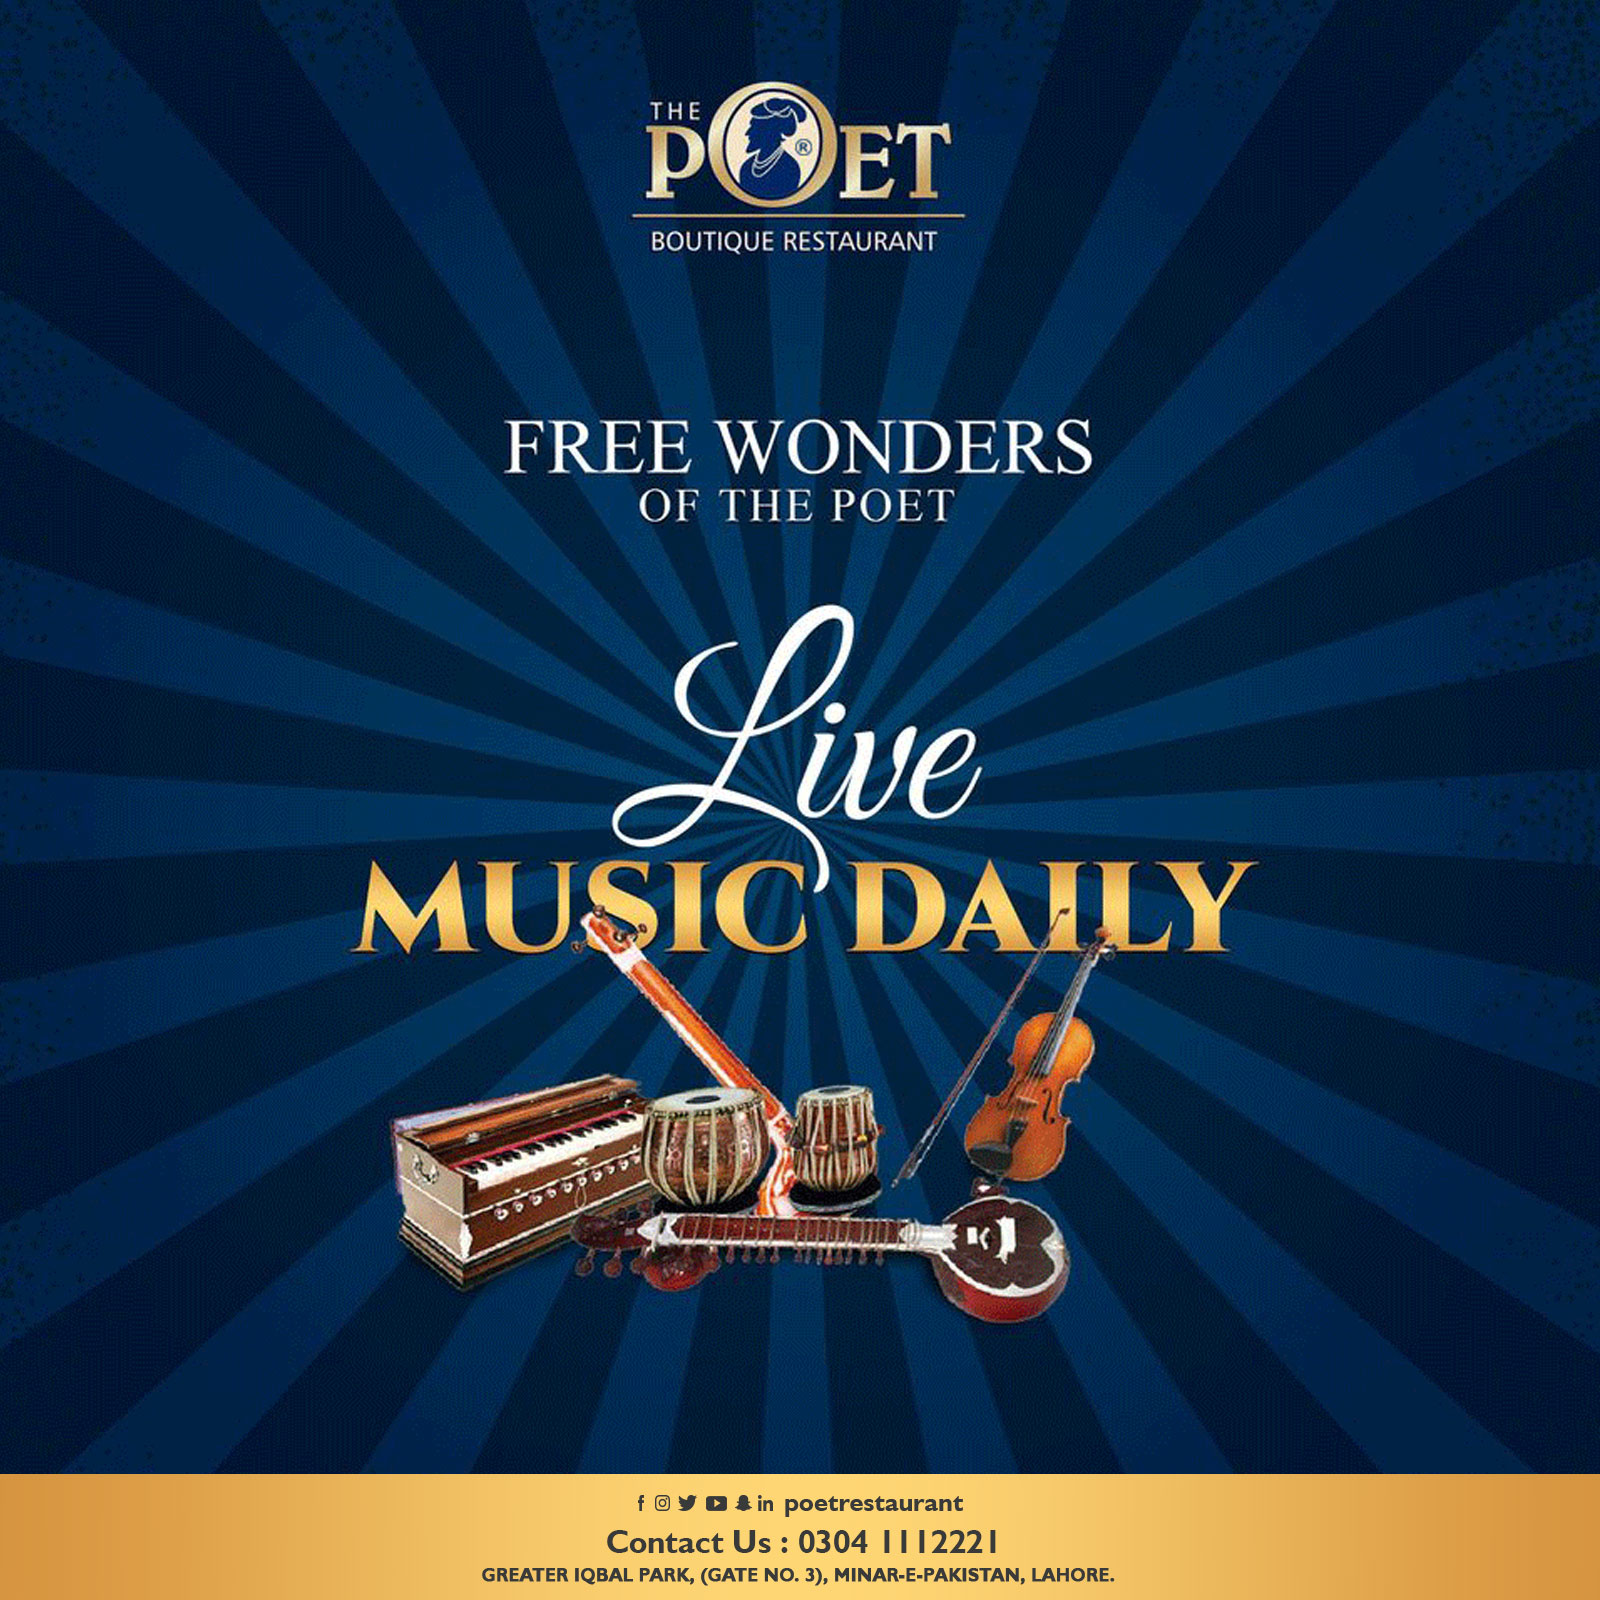 Live Music Daily at The Poet Restaurant